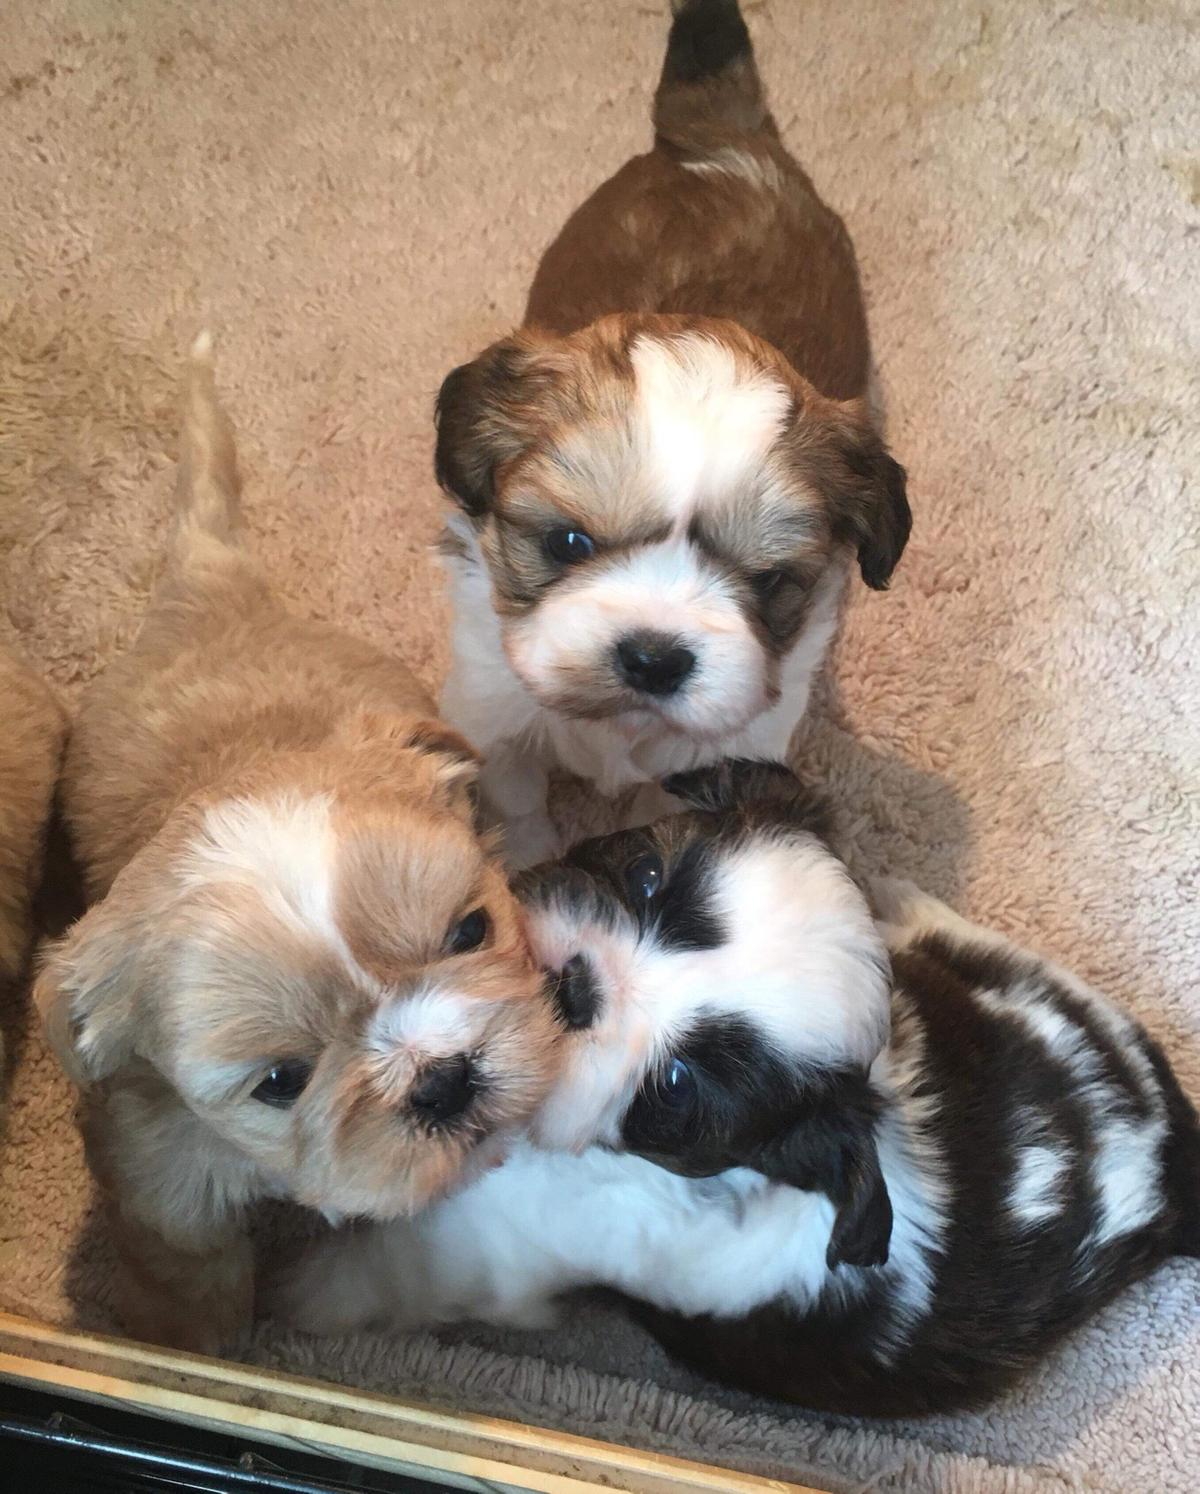 Shih tzu puppy's in Hambleton for £400 00 for sale - Shpock